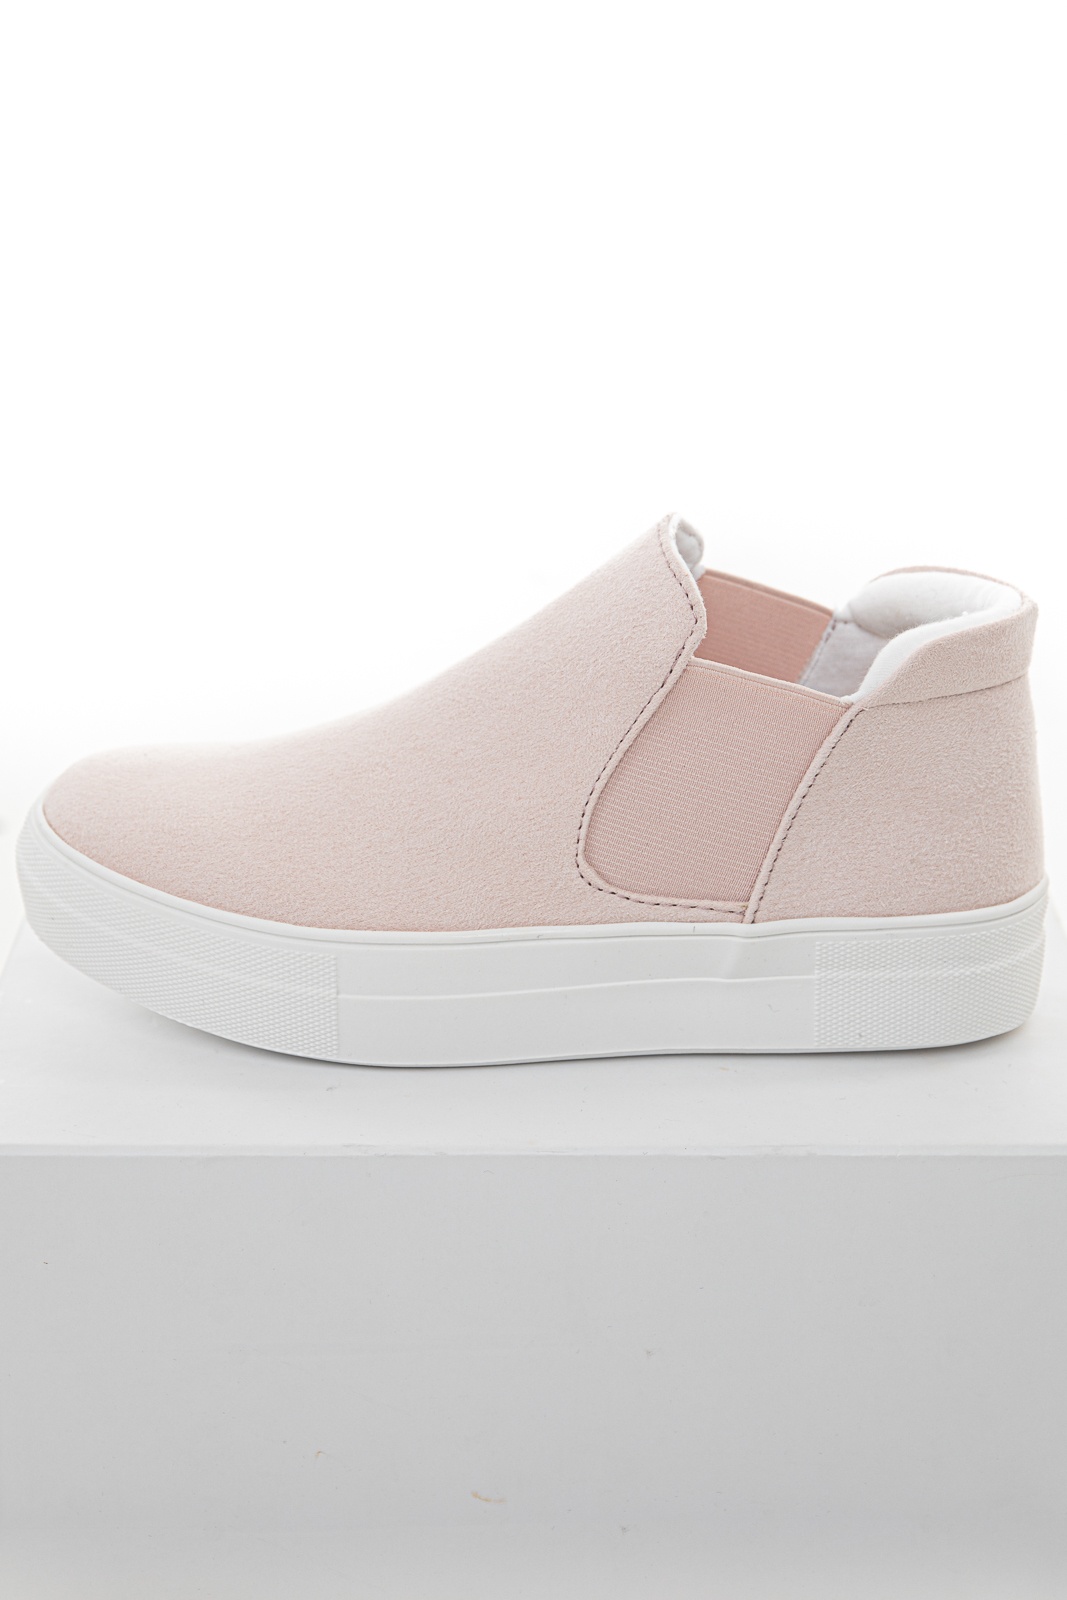 Blush Suede High Top Slip On Sneakers with Elastic Panel